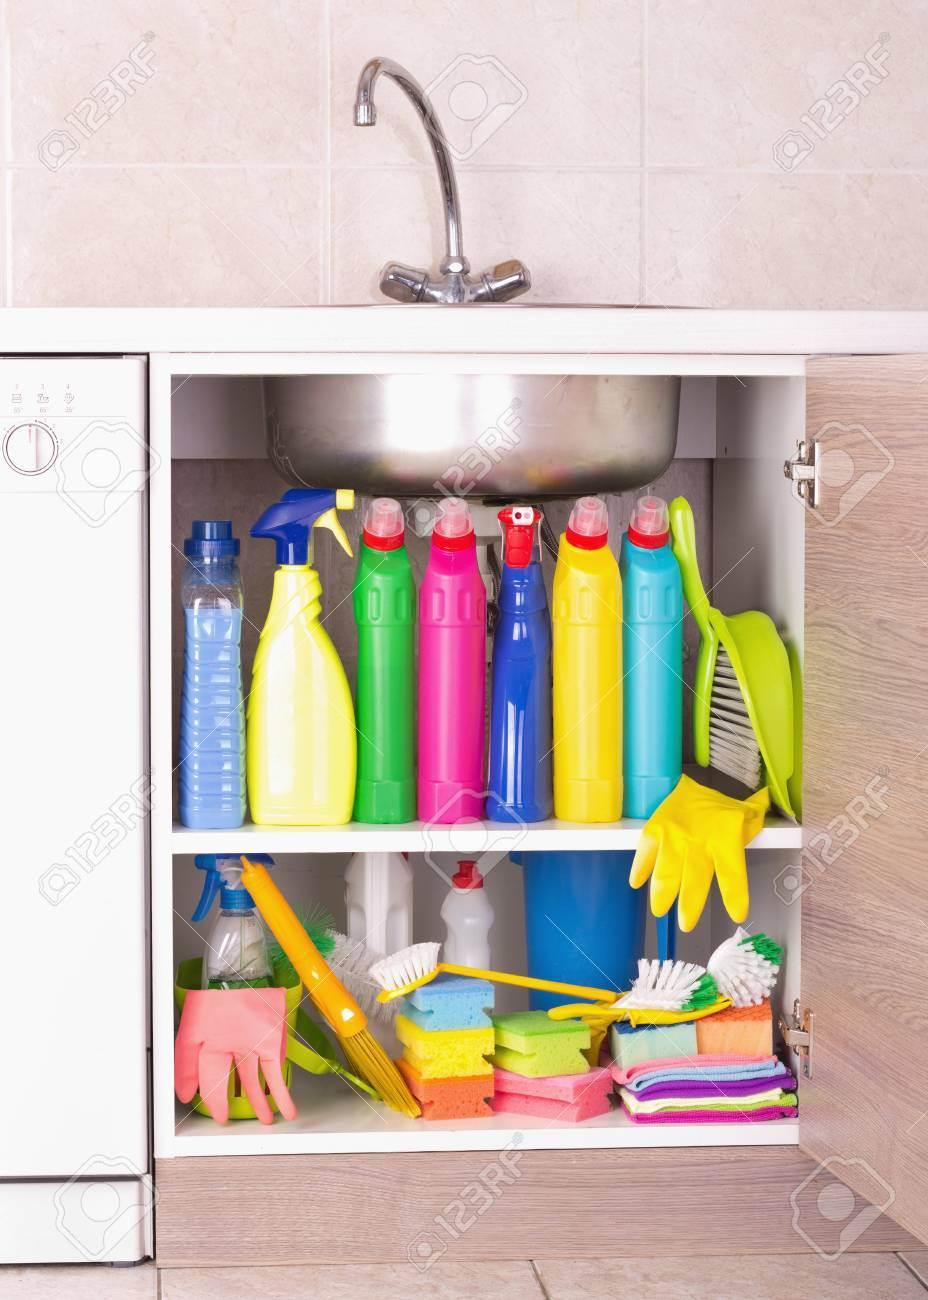 cleaning products placed in kitchen cabinet under sink housekeeping